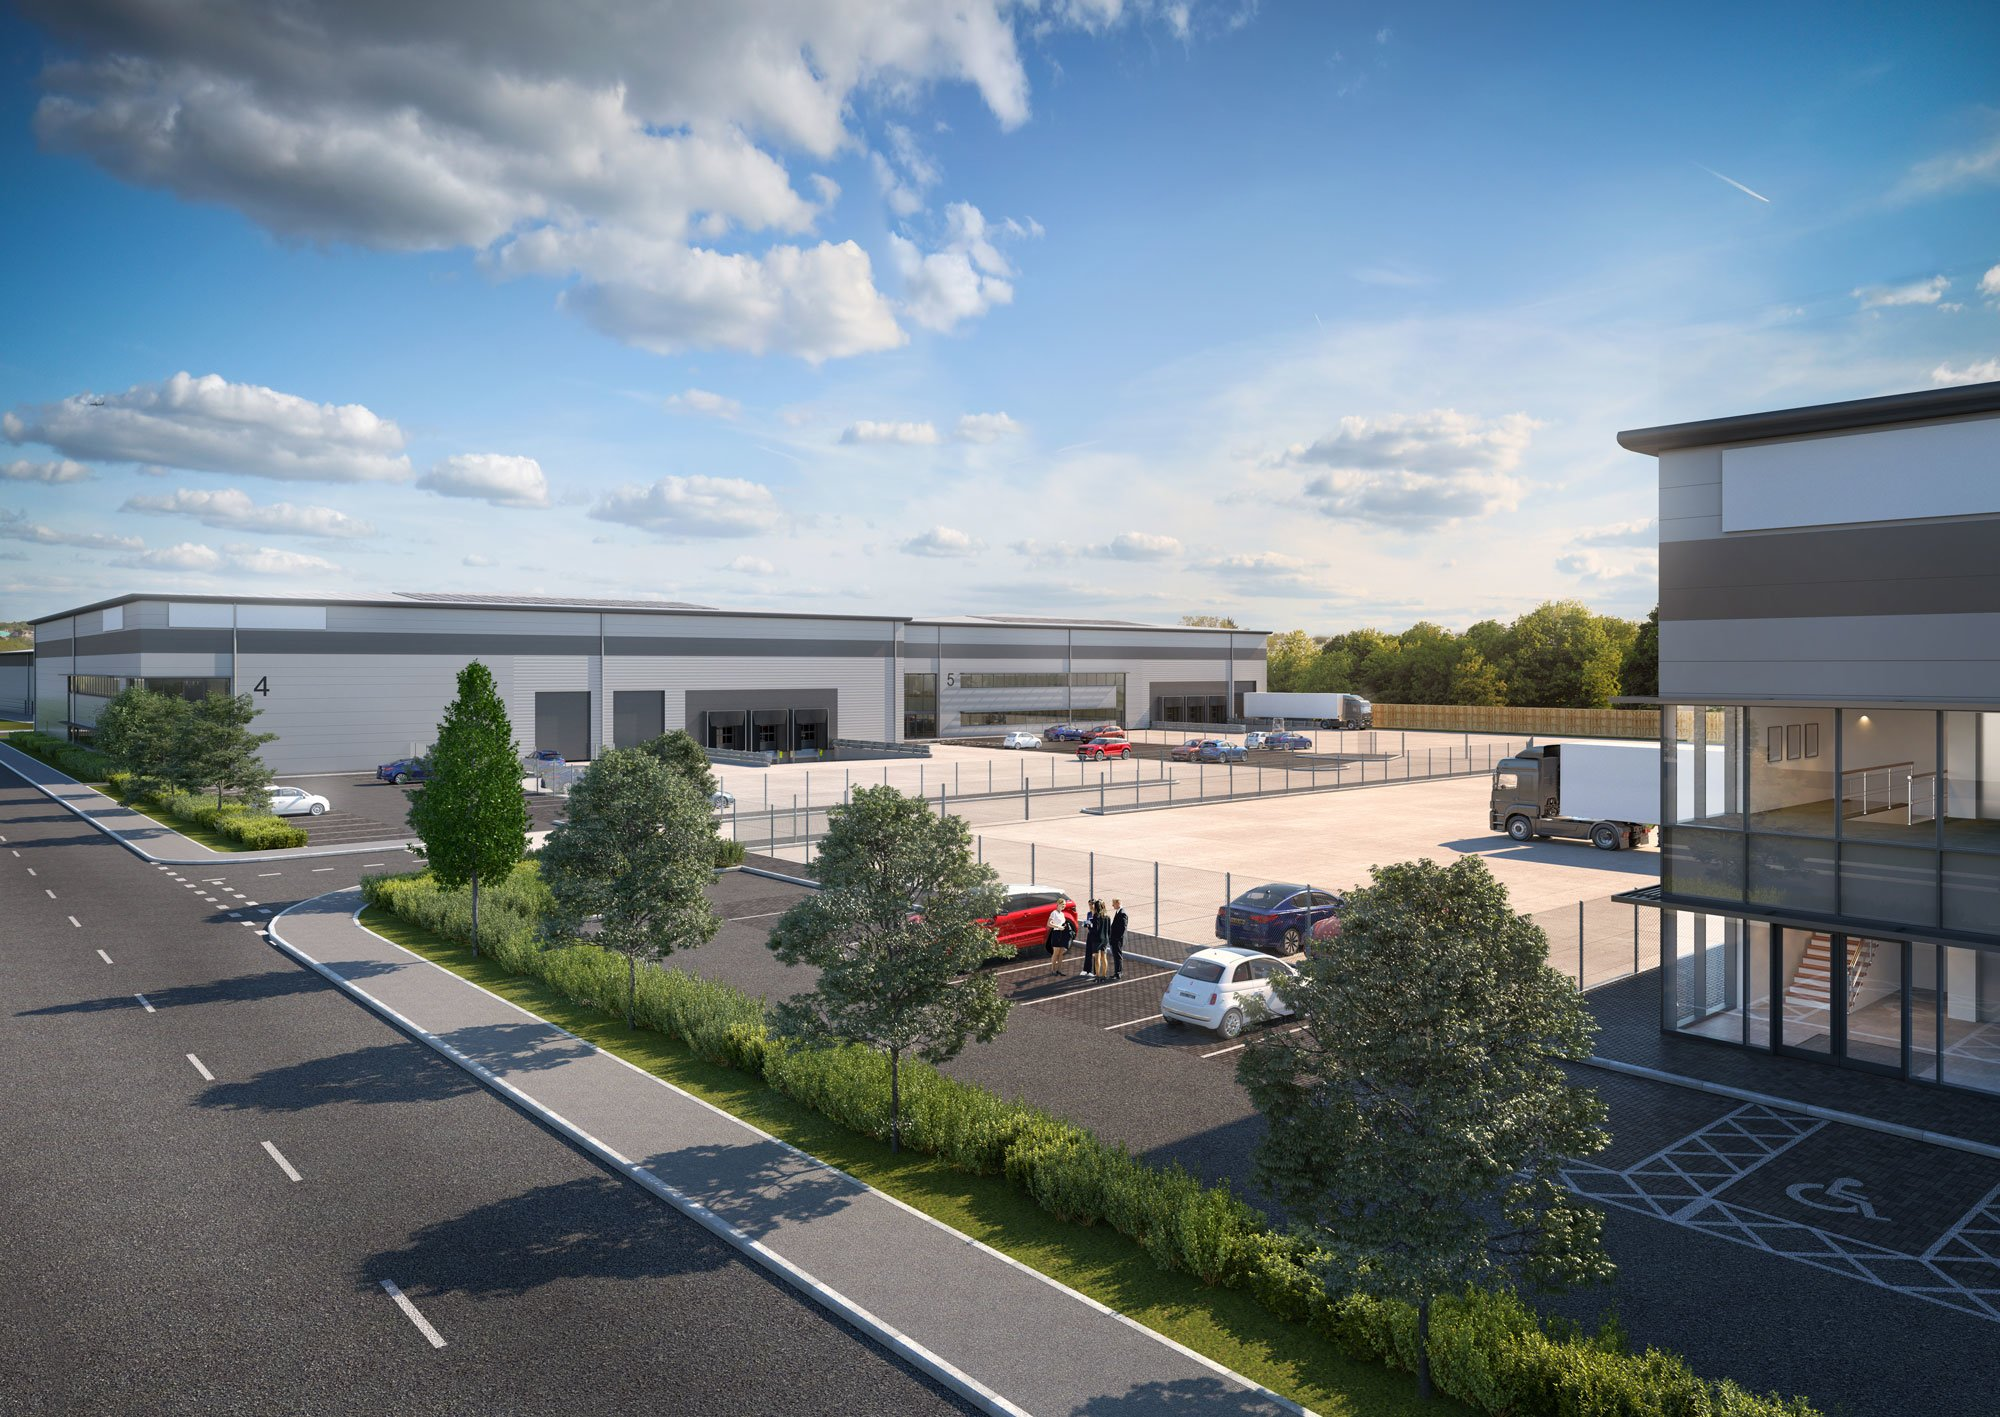 Construction to start at Axis J9 Bicester's latest distribution & manufacturing park following detailed planning approval